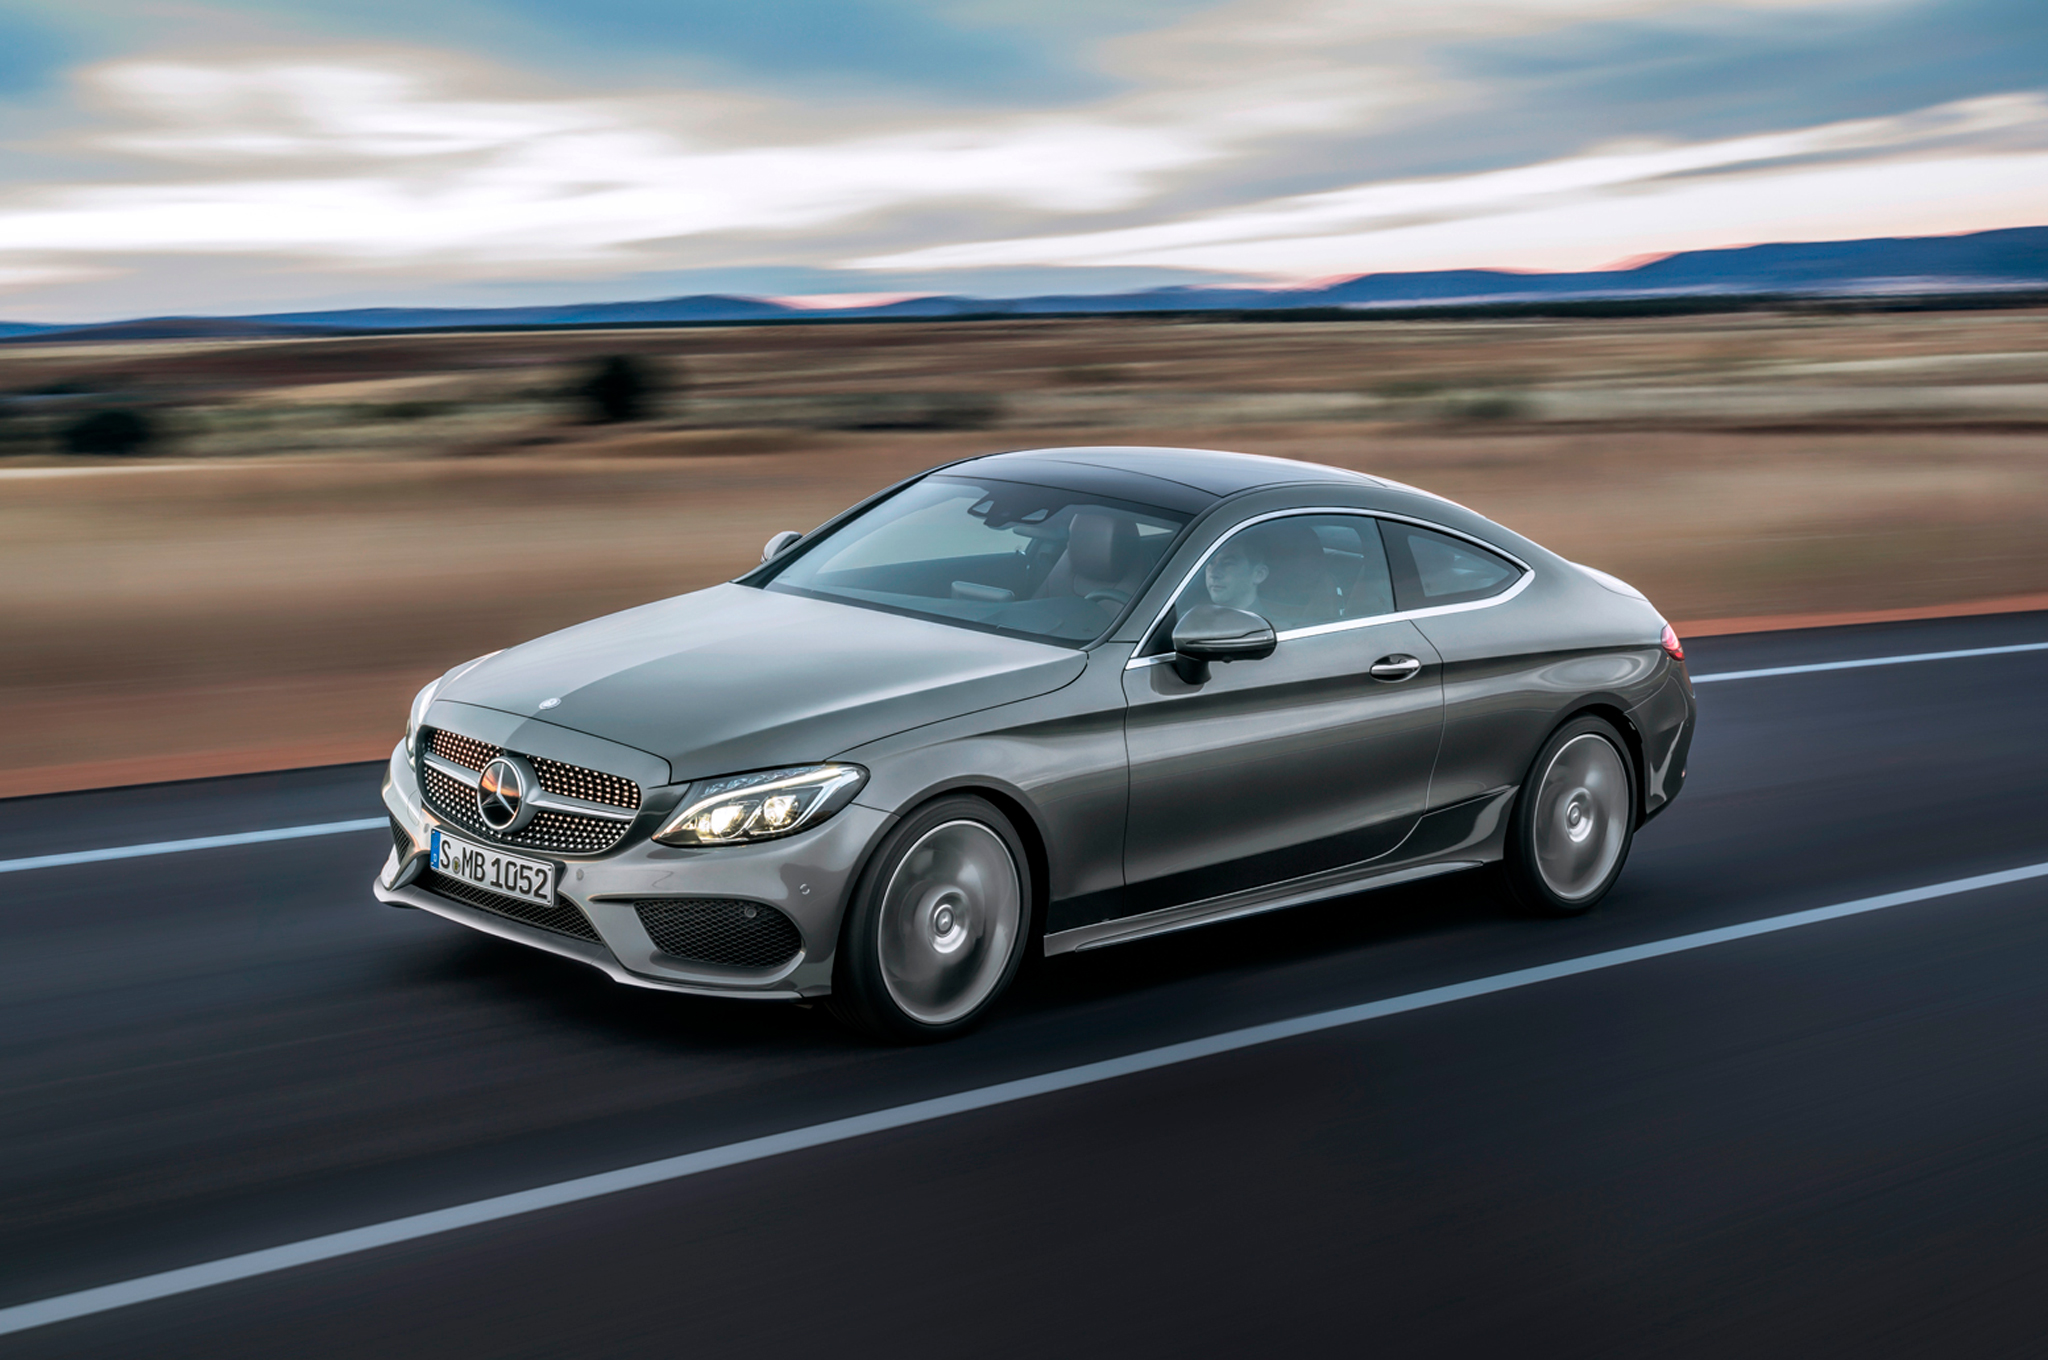 https://enthusiastnetwork.s3.amazonaws.com/uploads/sites/5/2015/08/2017-Mercedes-Benz-C300-Coupe-promo.jpg?impolicy=entryimage